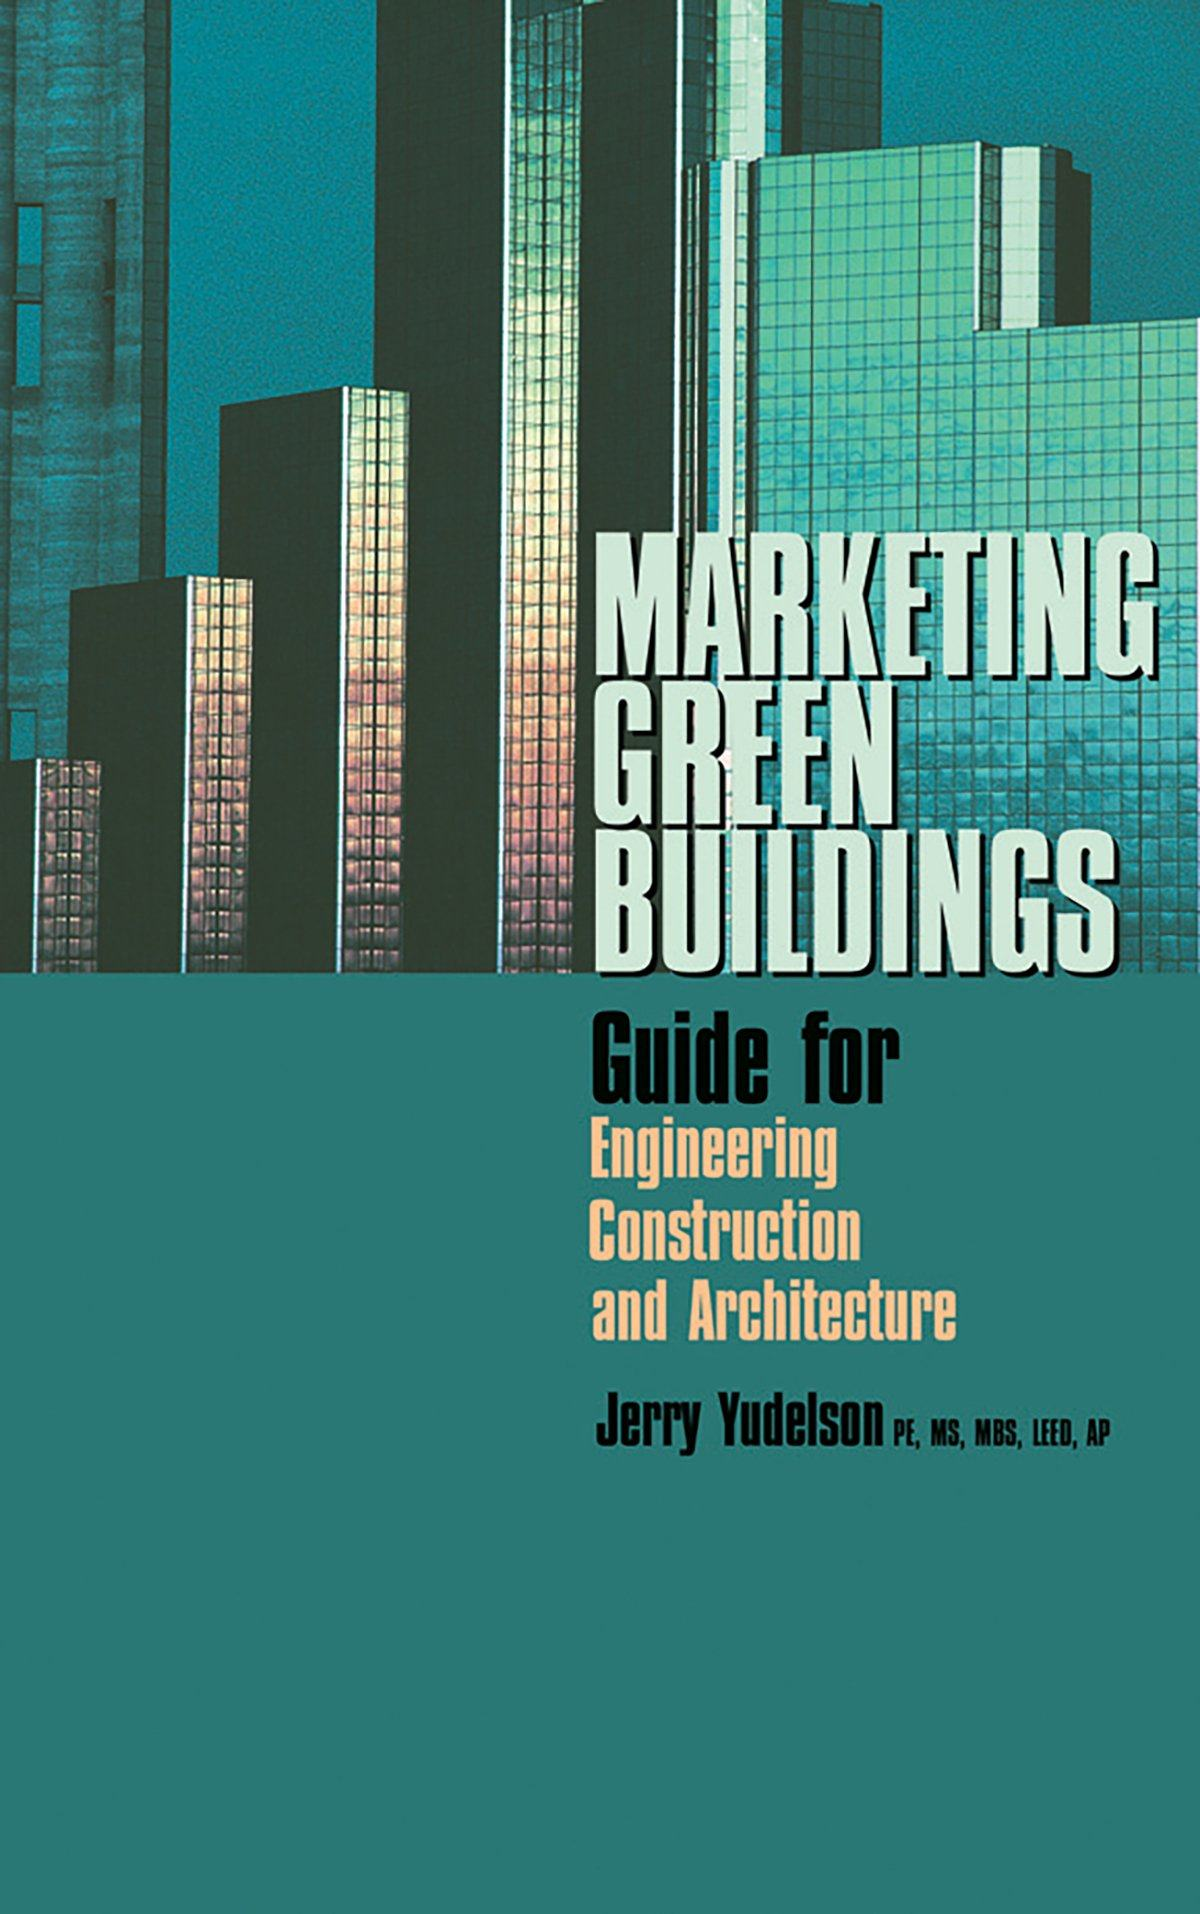 marketing green buildings guide for engineering construction